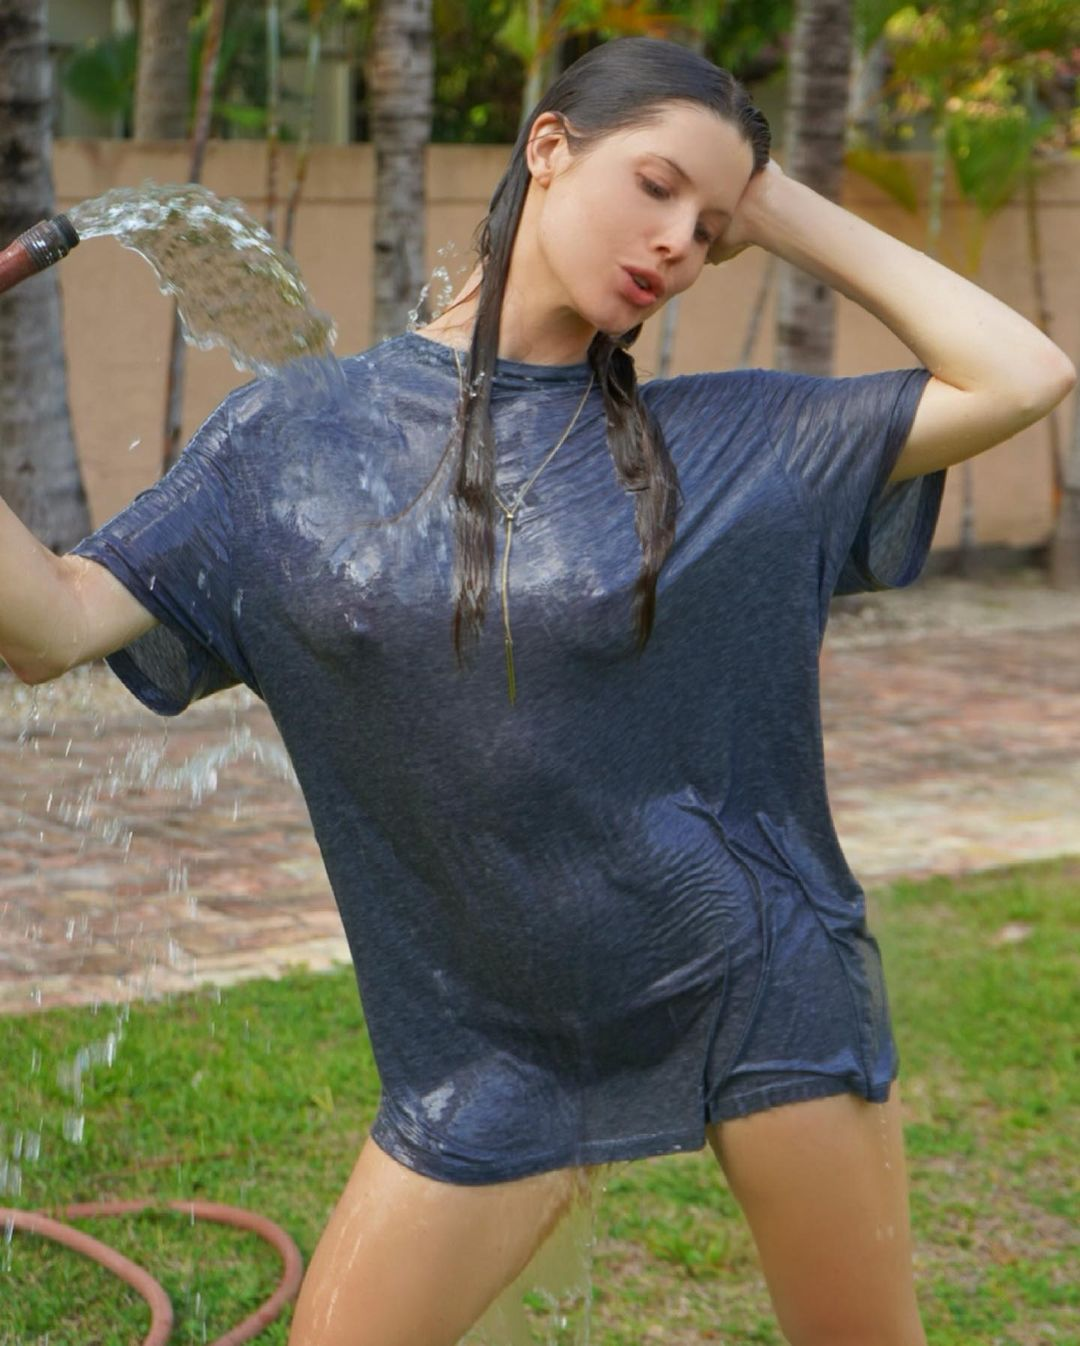 Hot photos of Playboy model and actress Amanda Cerny will take your breath away 10